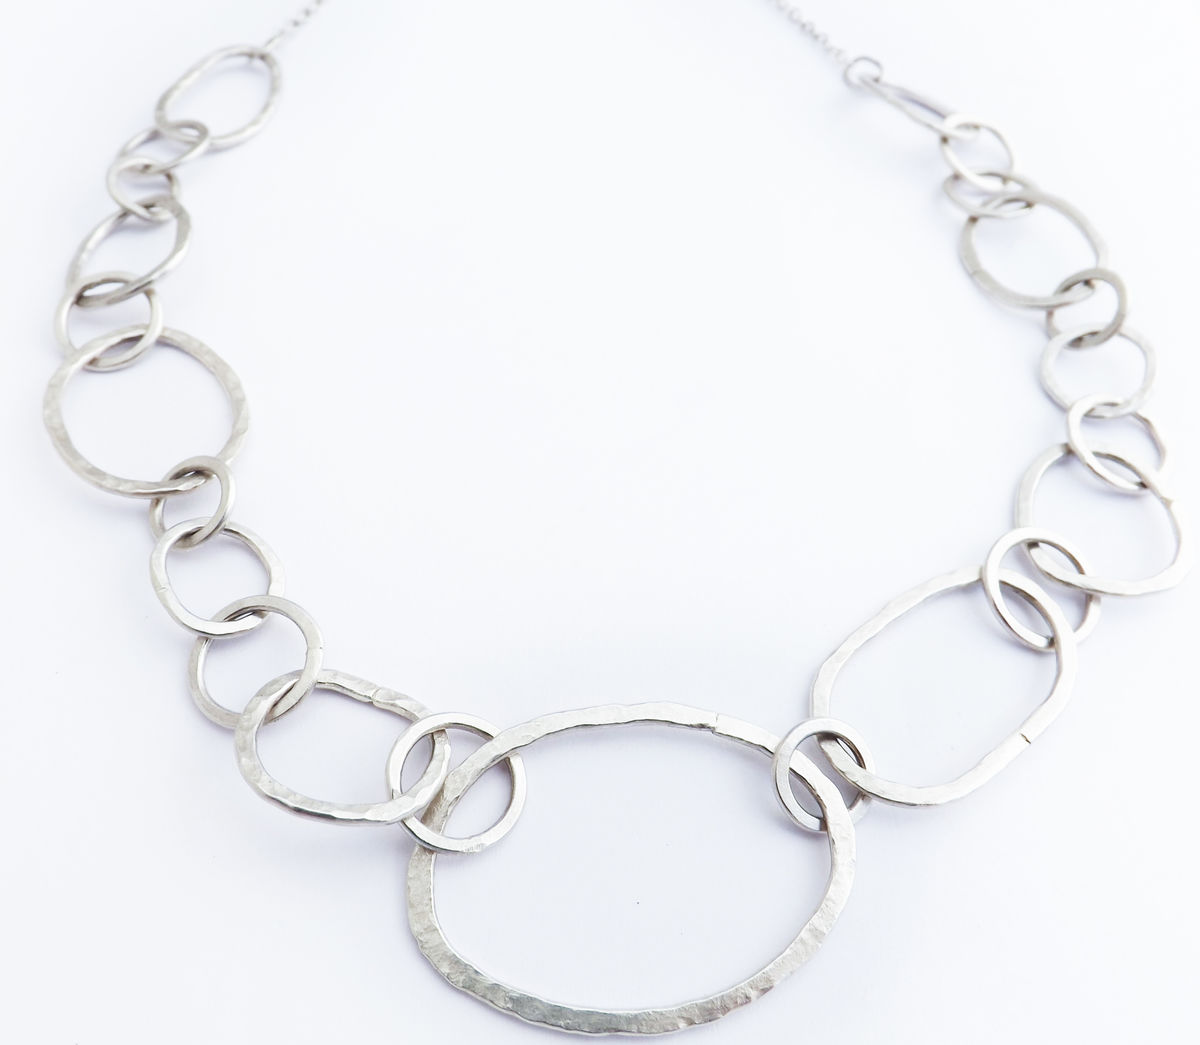 handmade hammered silver chain necklace - product images  of